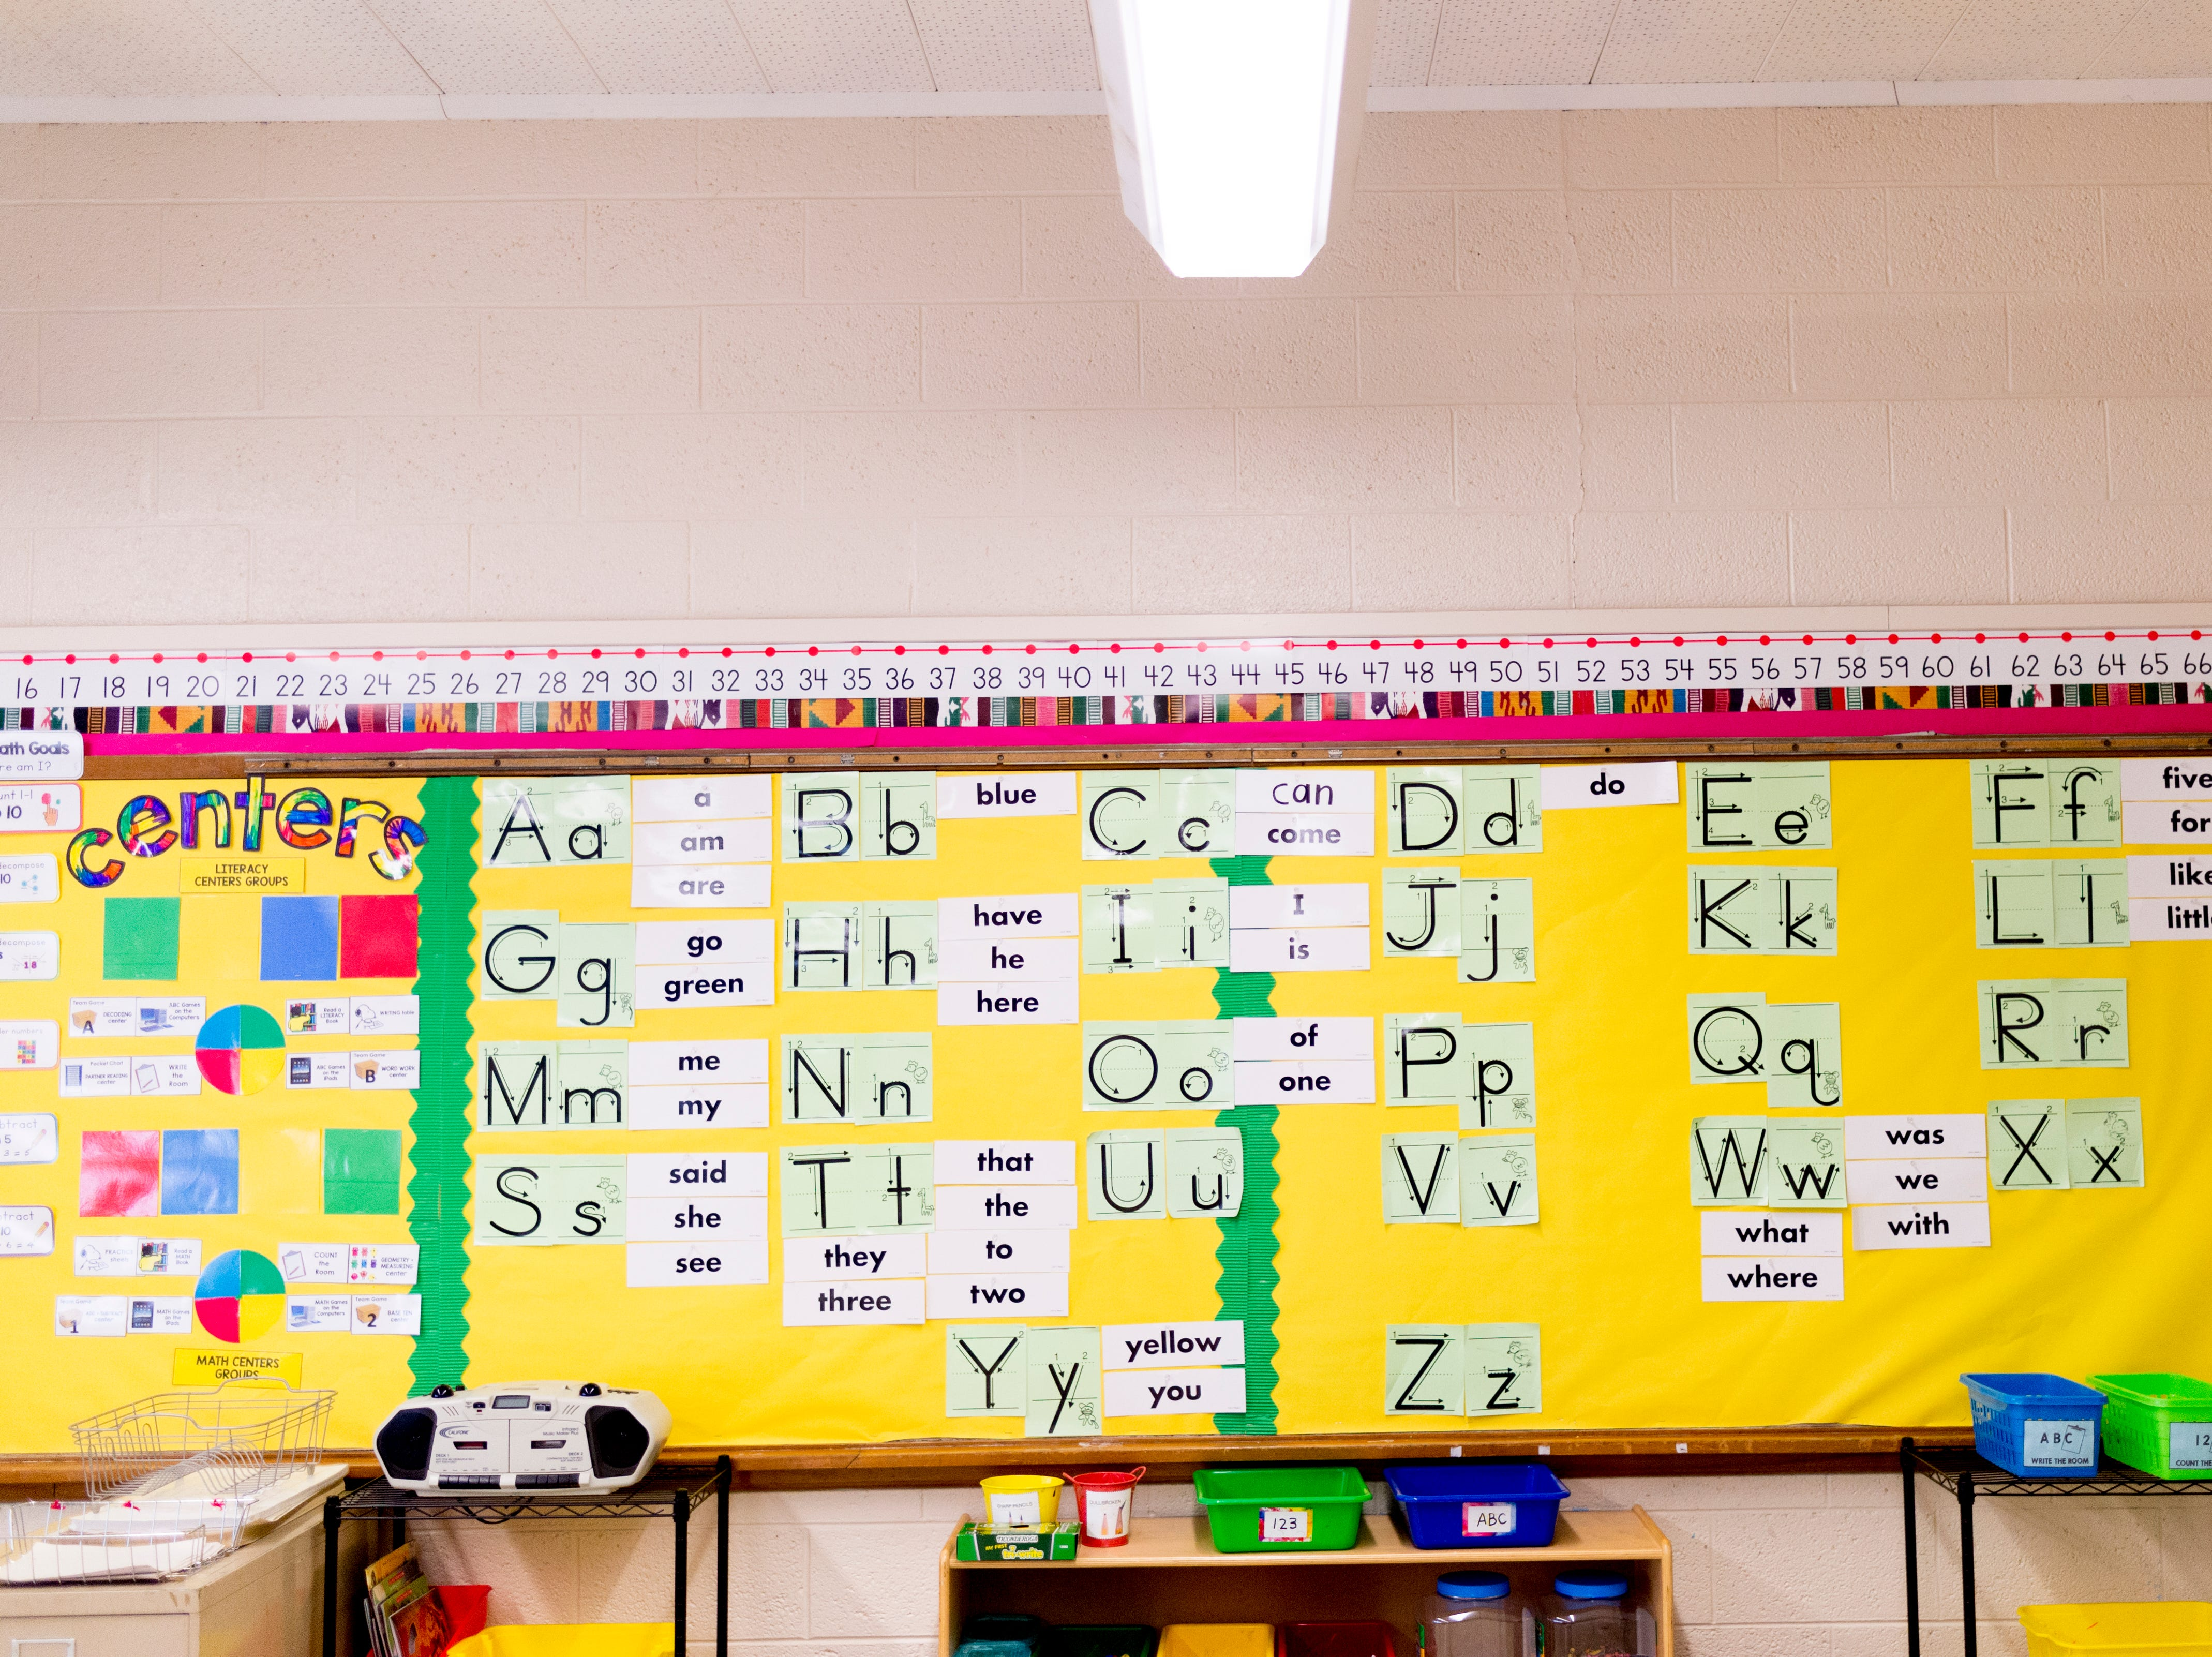 The alphabet is seen on the wall in Patricia Galicki's kindergarten room at Sam E. Hill Primary School in the Lonsdale community in Knoxville, Tennessee on Friday, August 3, 2018. The school has newly transitioned from a preschool into a primary school.